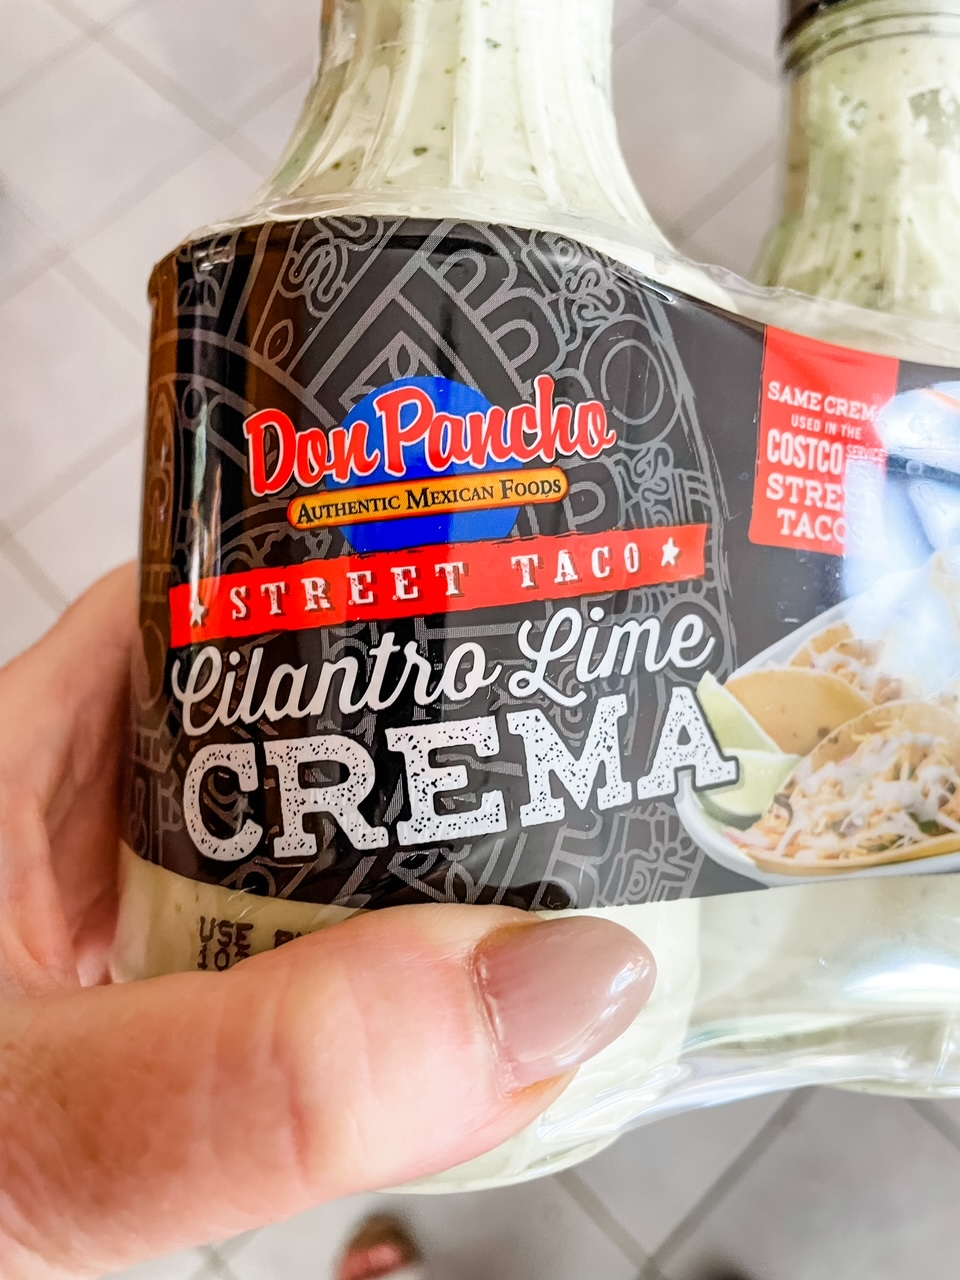 The crema sauce from Costco